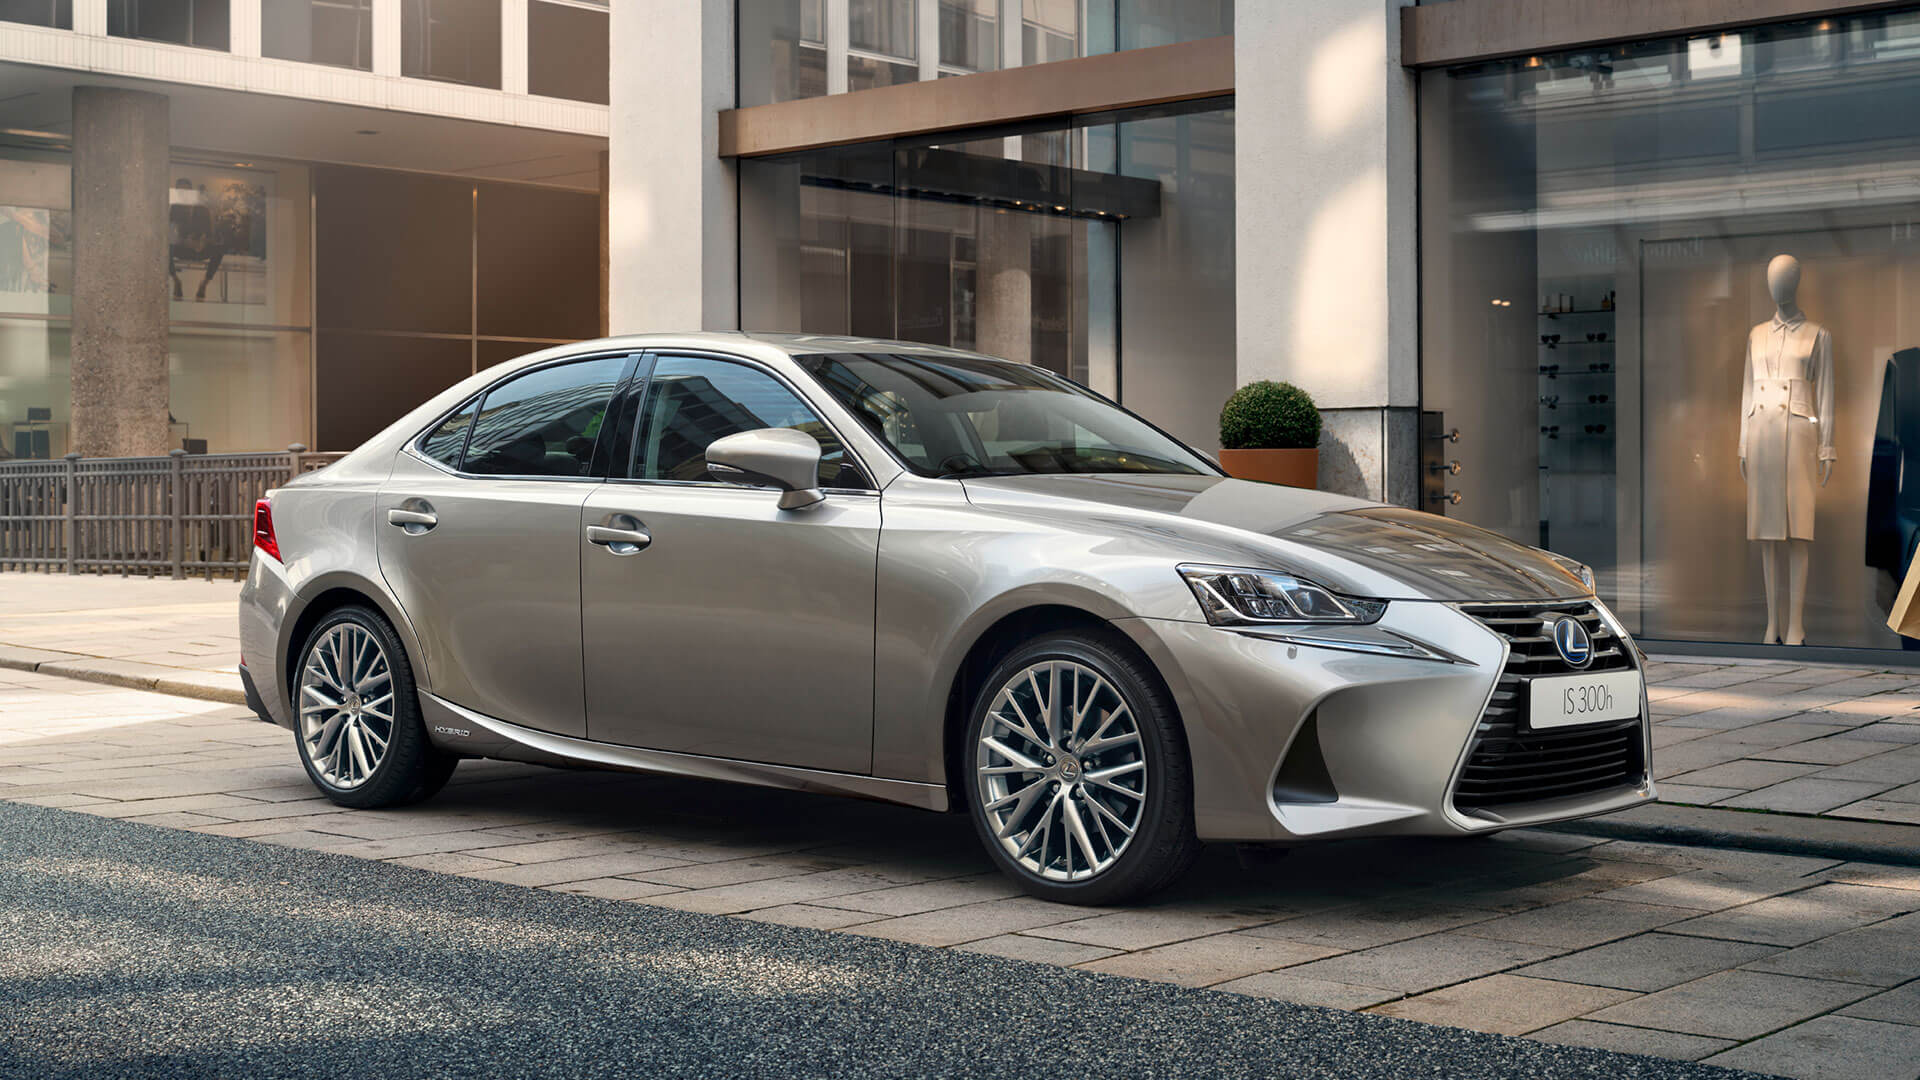 2017 lexus is 300h next steps personlise